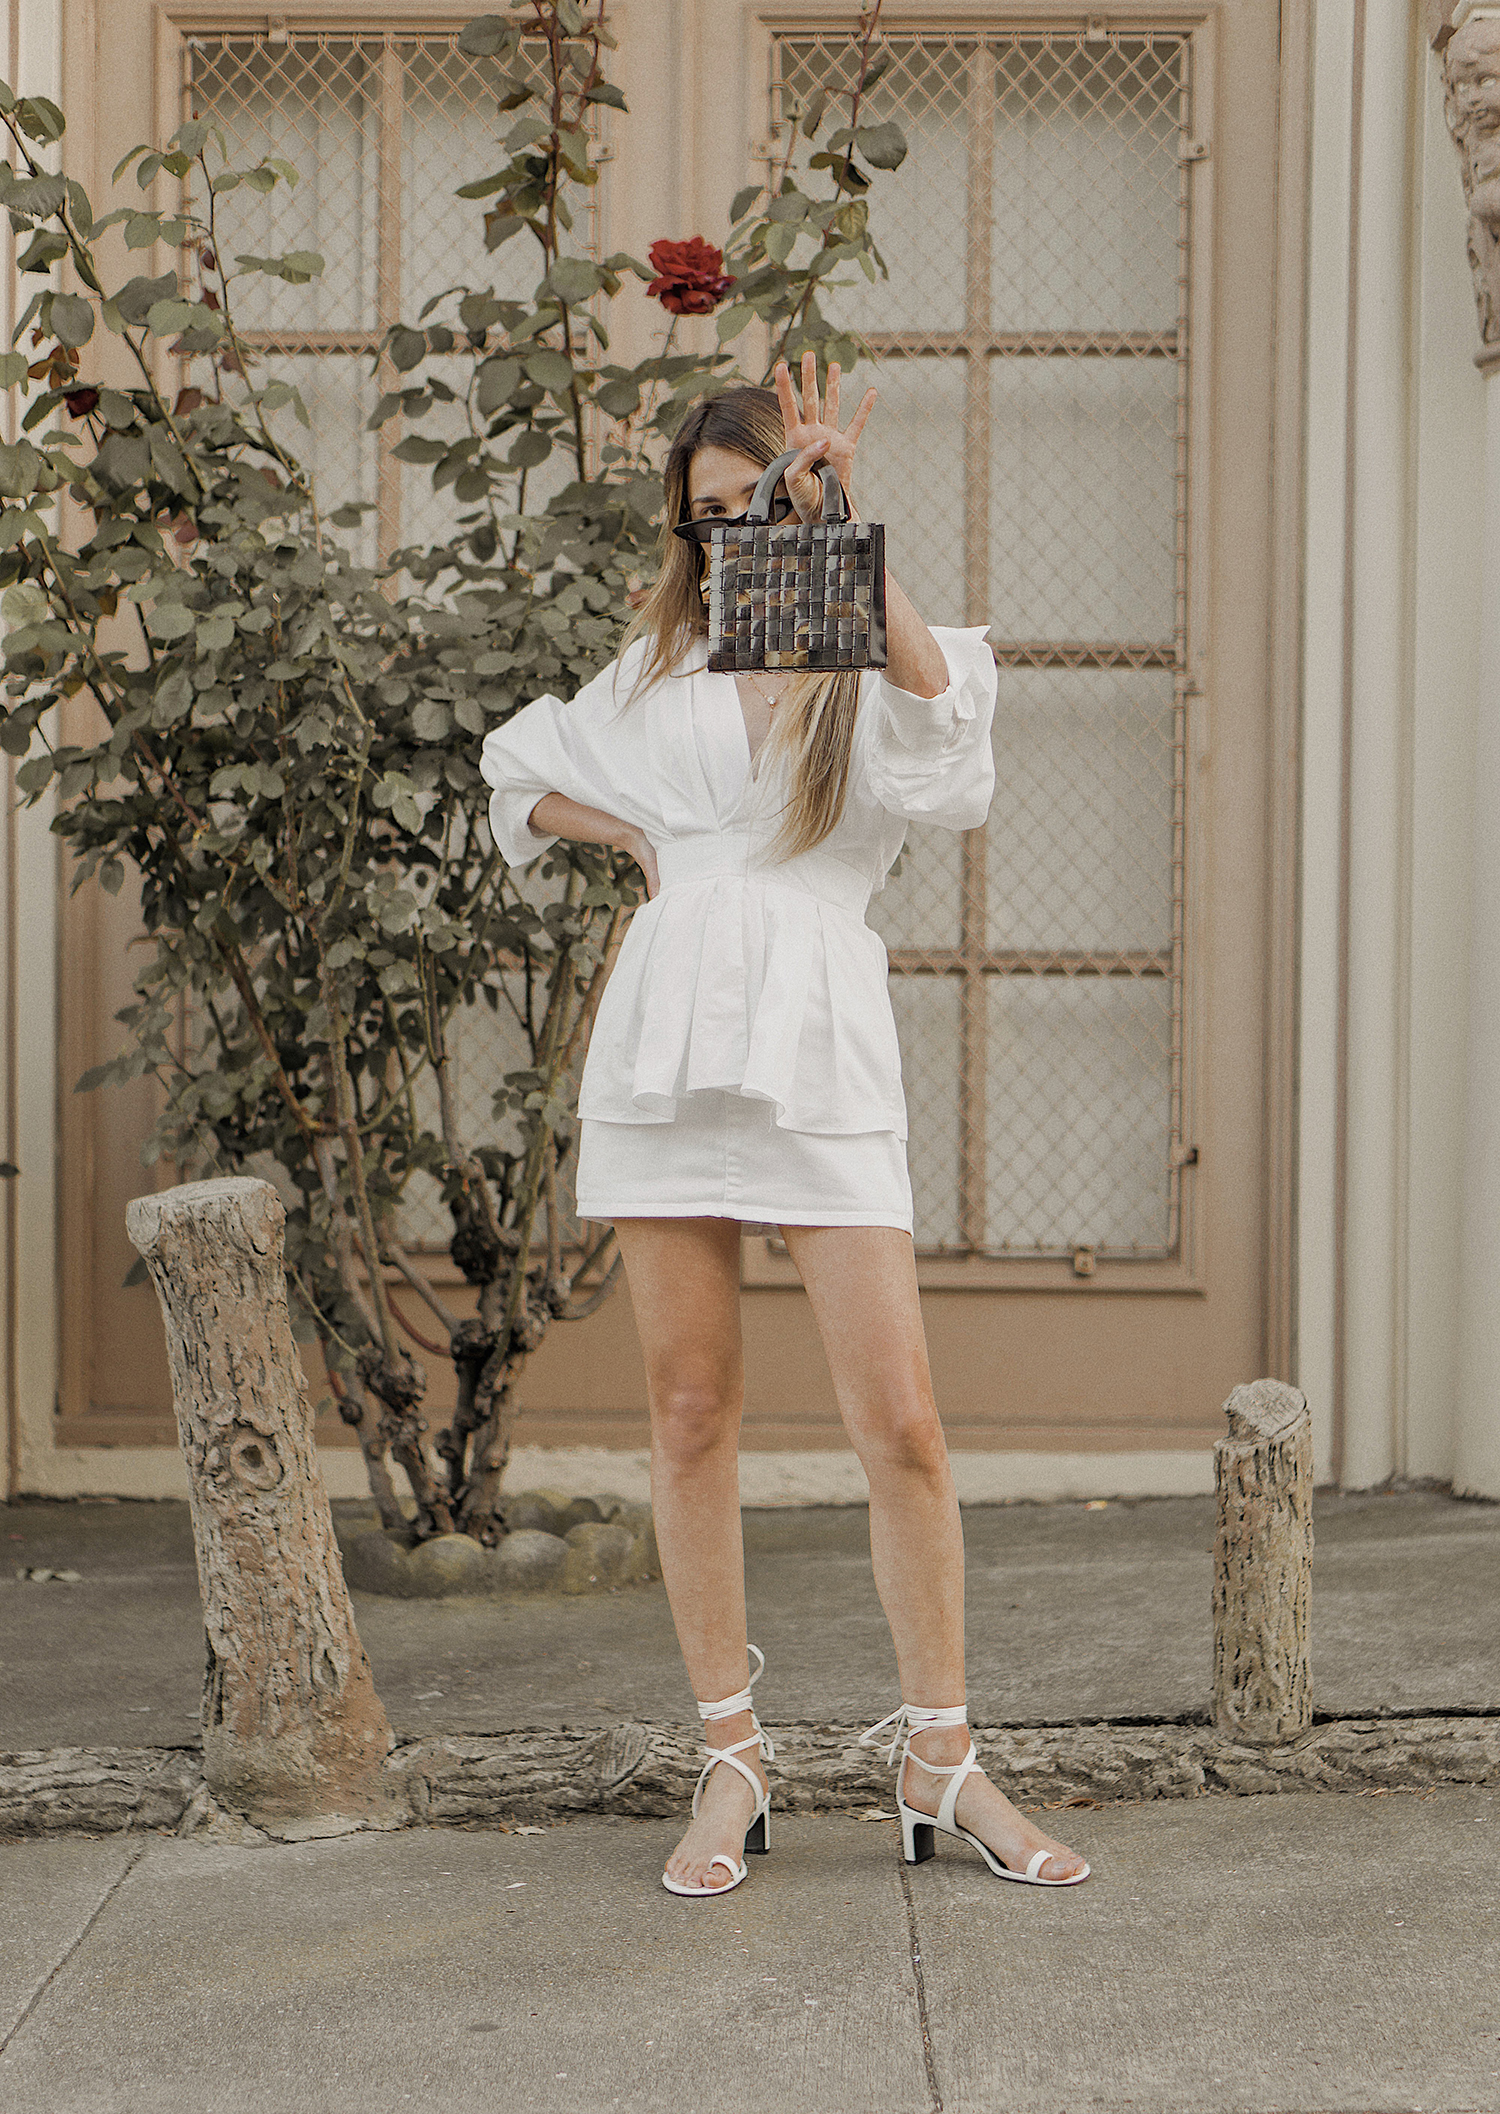 white_outfit_look_ideas_street_style_total_white_Céline_inspired_Ring_Toe_Lace_Up_Sandals_summer_san_francisco_fashion_blogger_bay_area_the_white_ocean_lena_juice_05